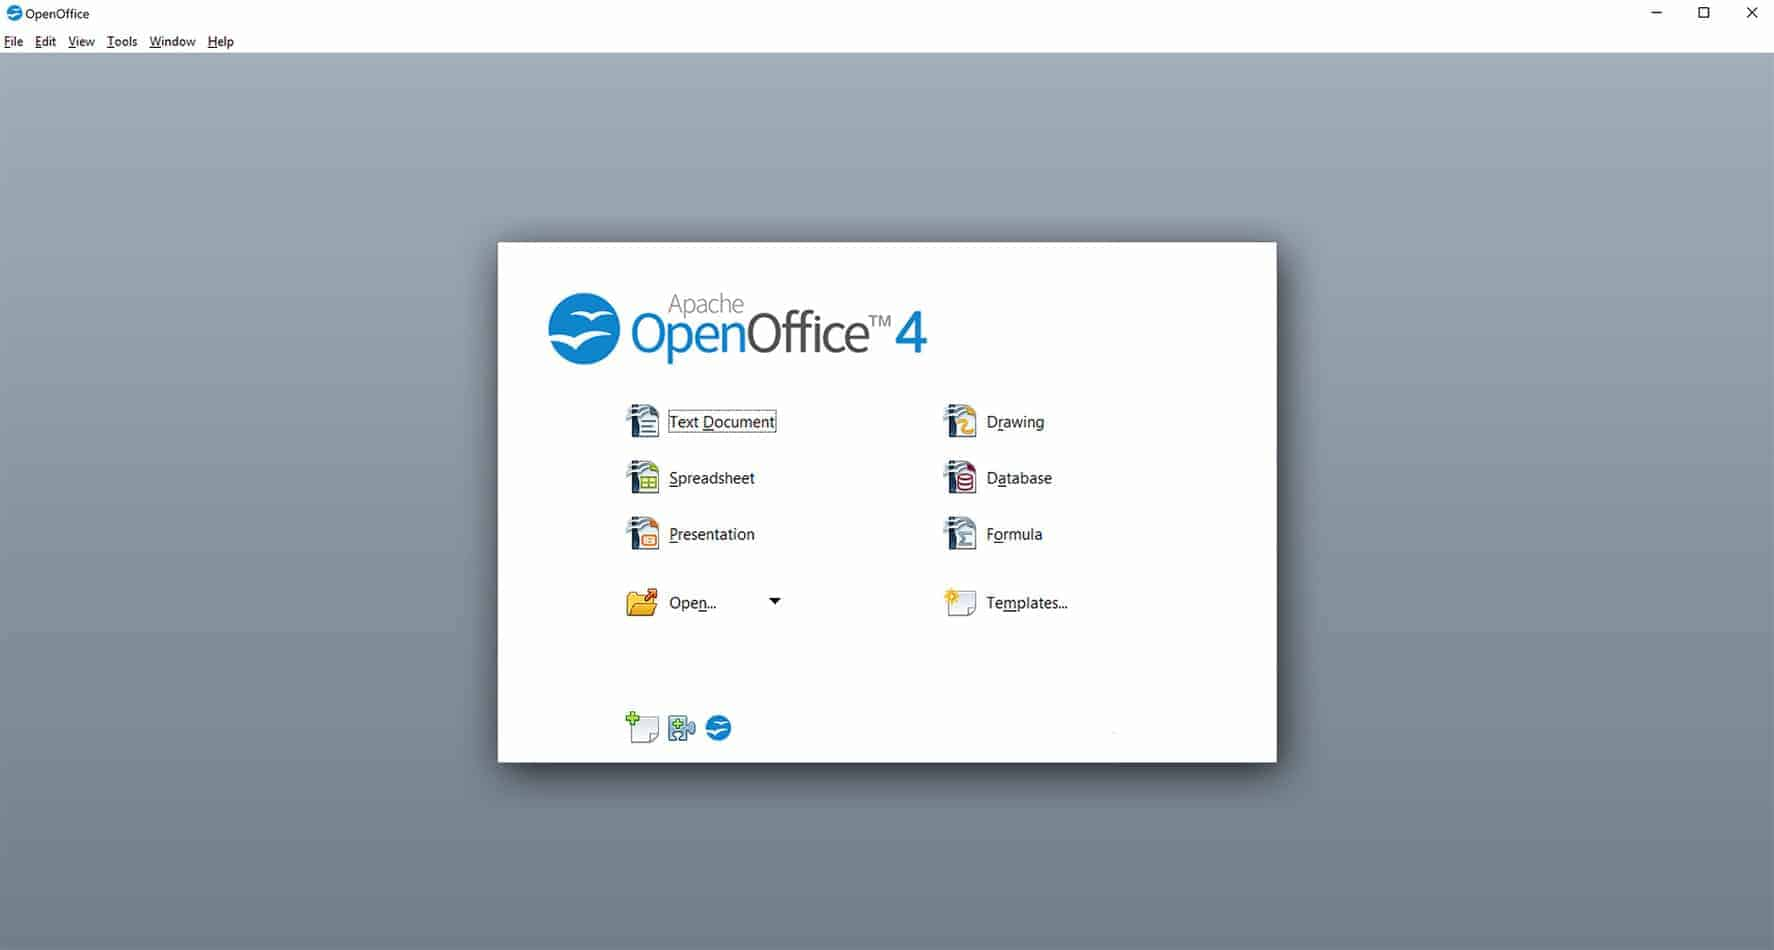 open office main window